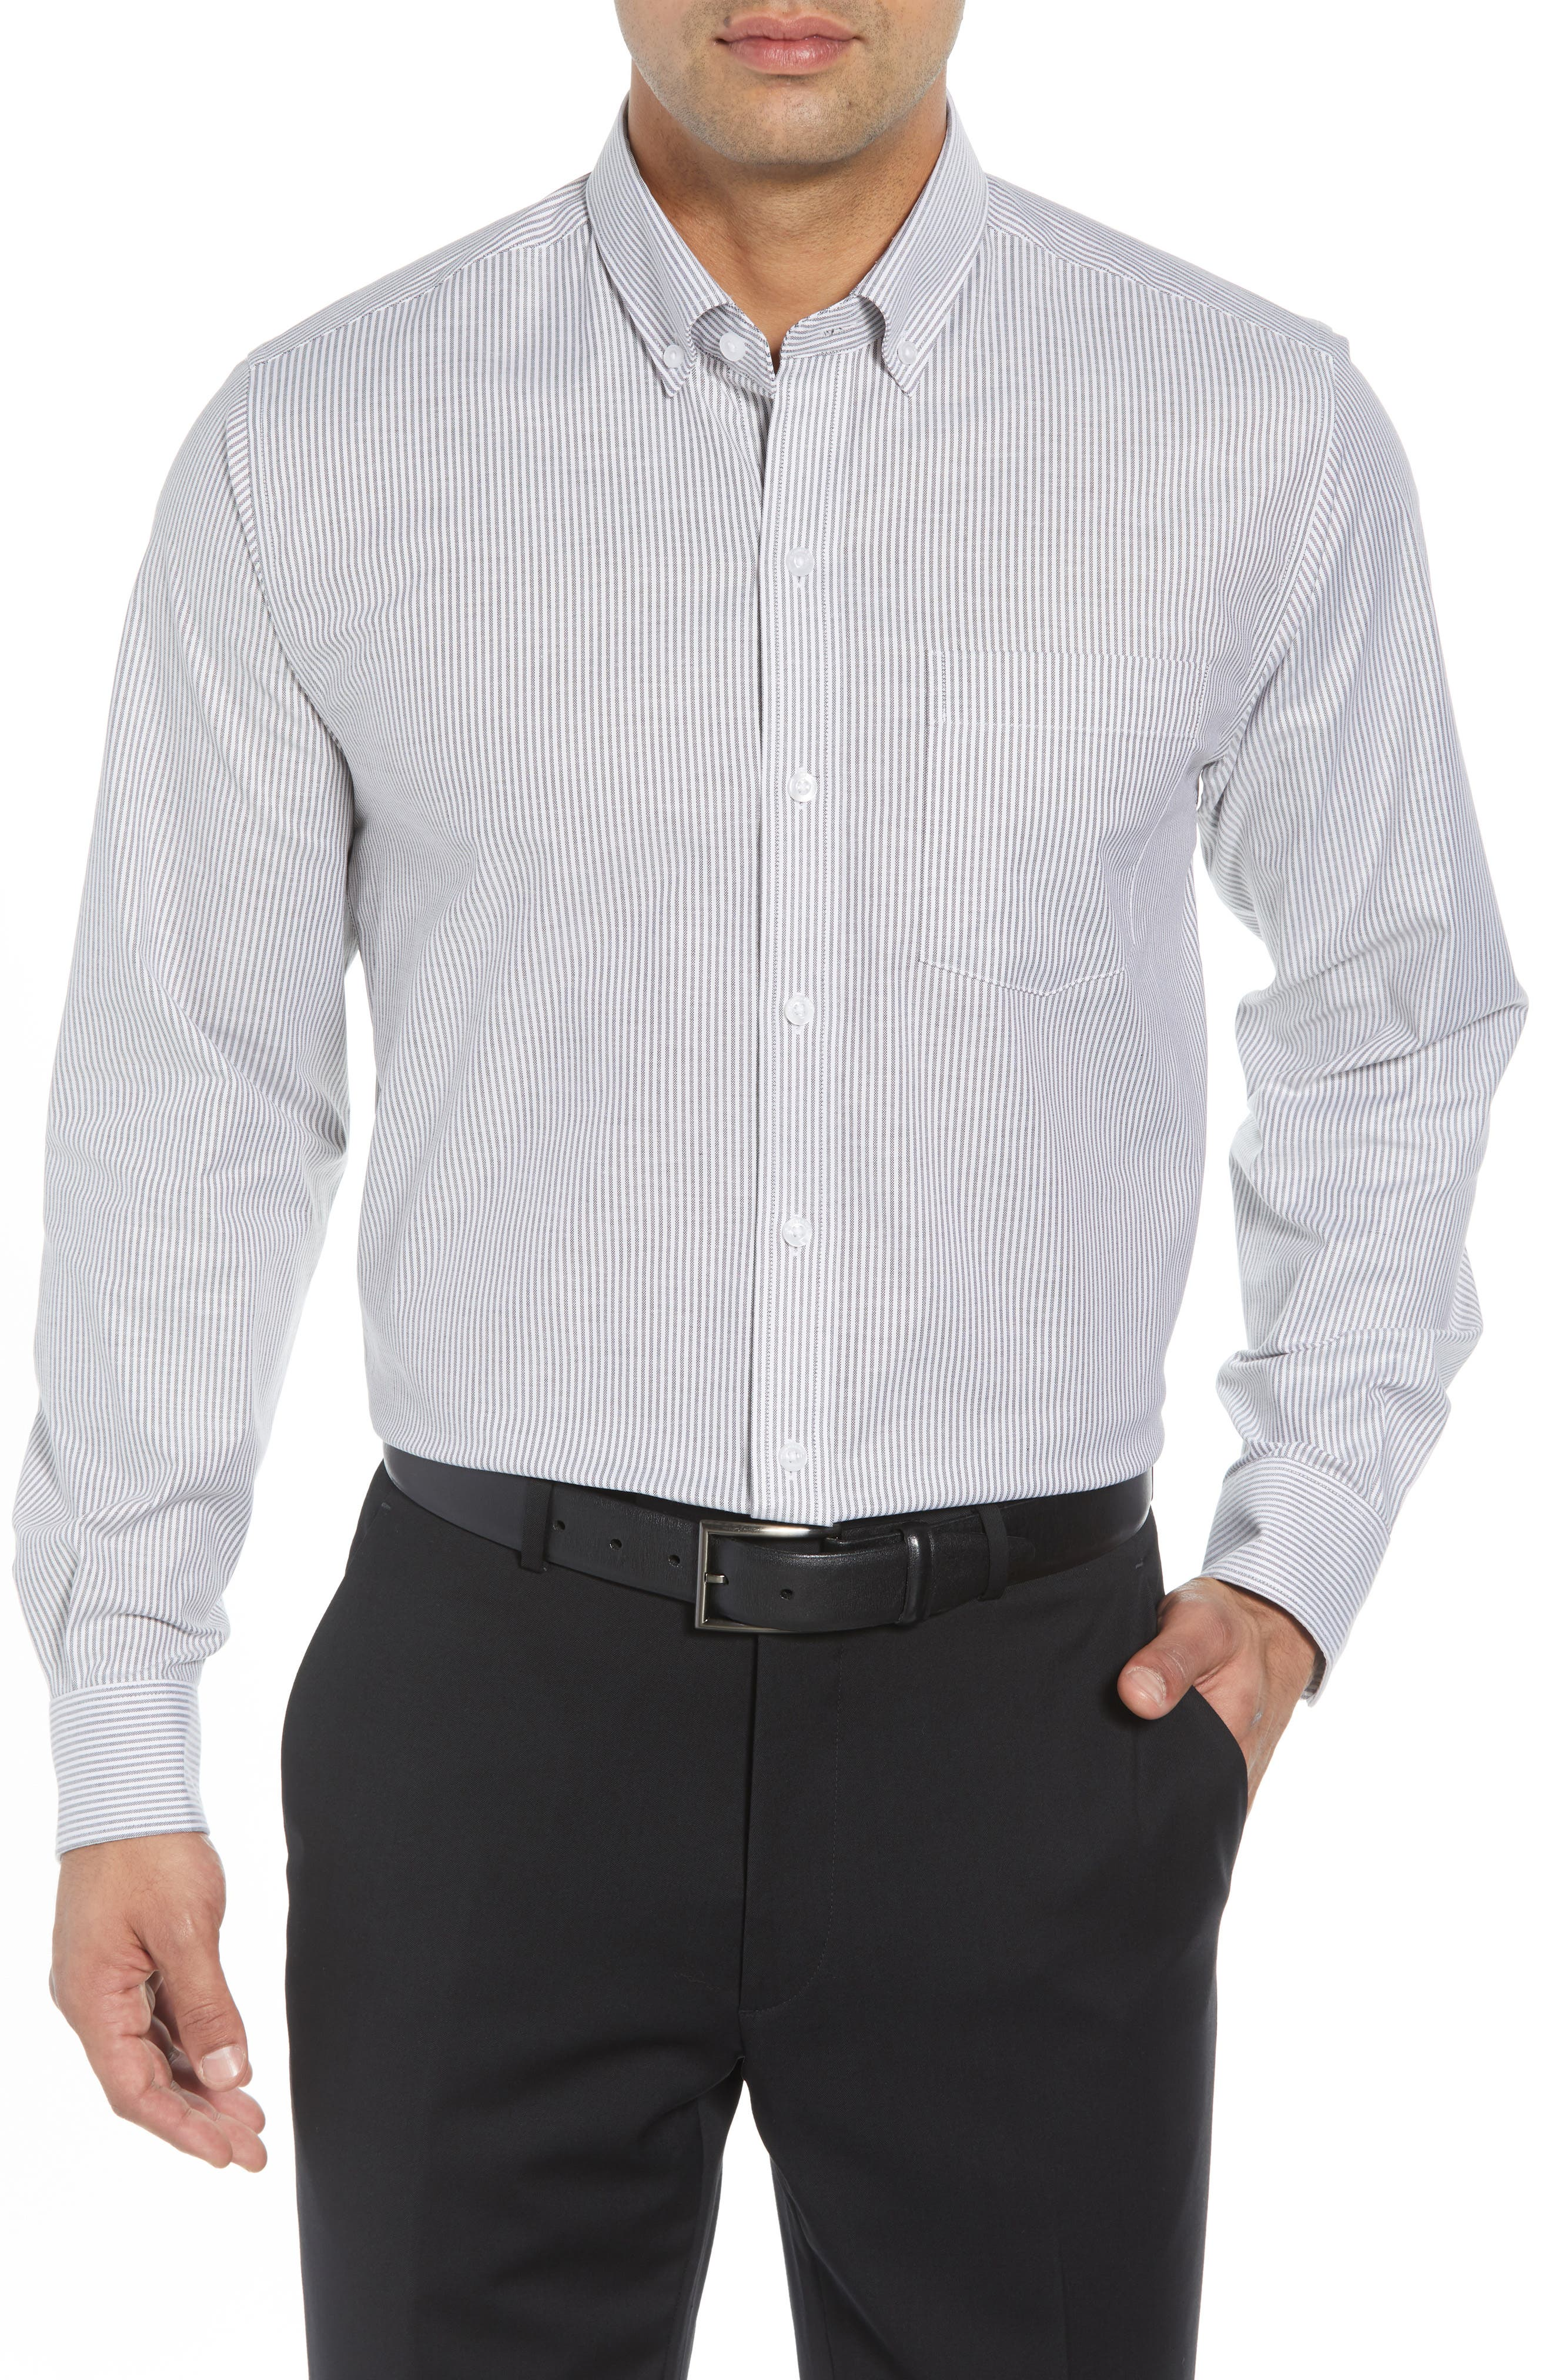 Regular Fit Stripe Stretch Oxford Shirt,                         Main,                         color, CHARCOAL